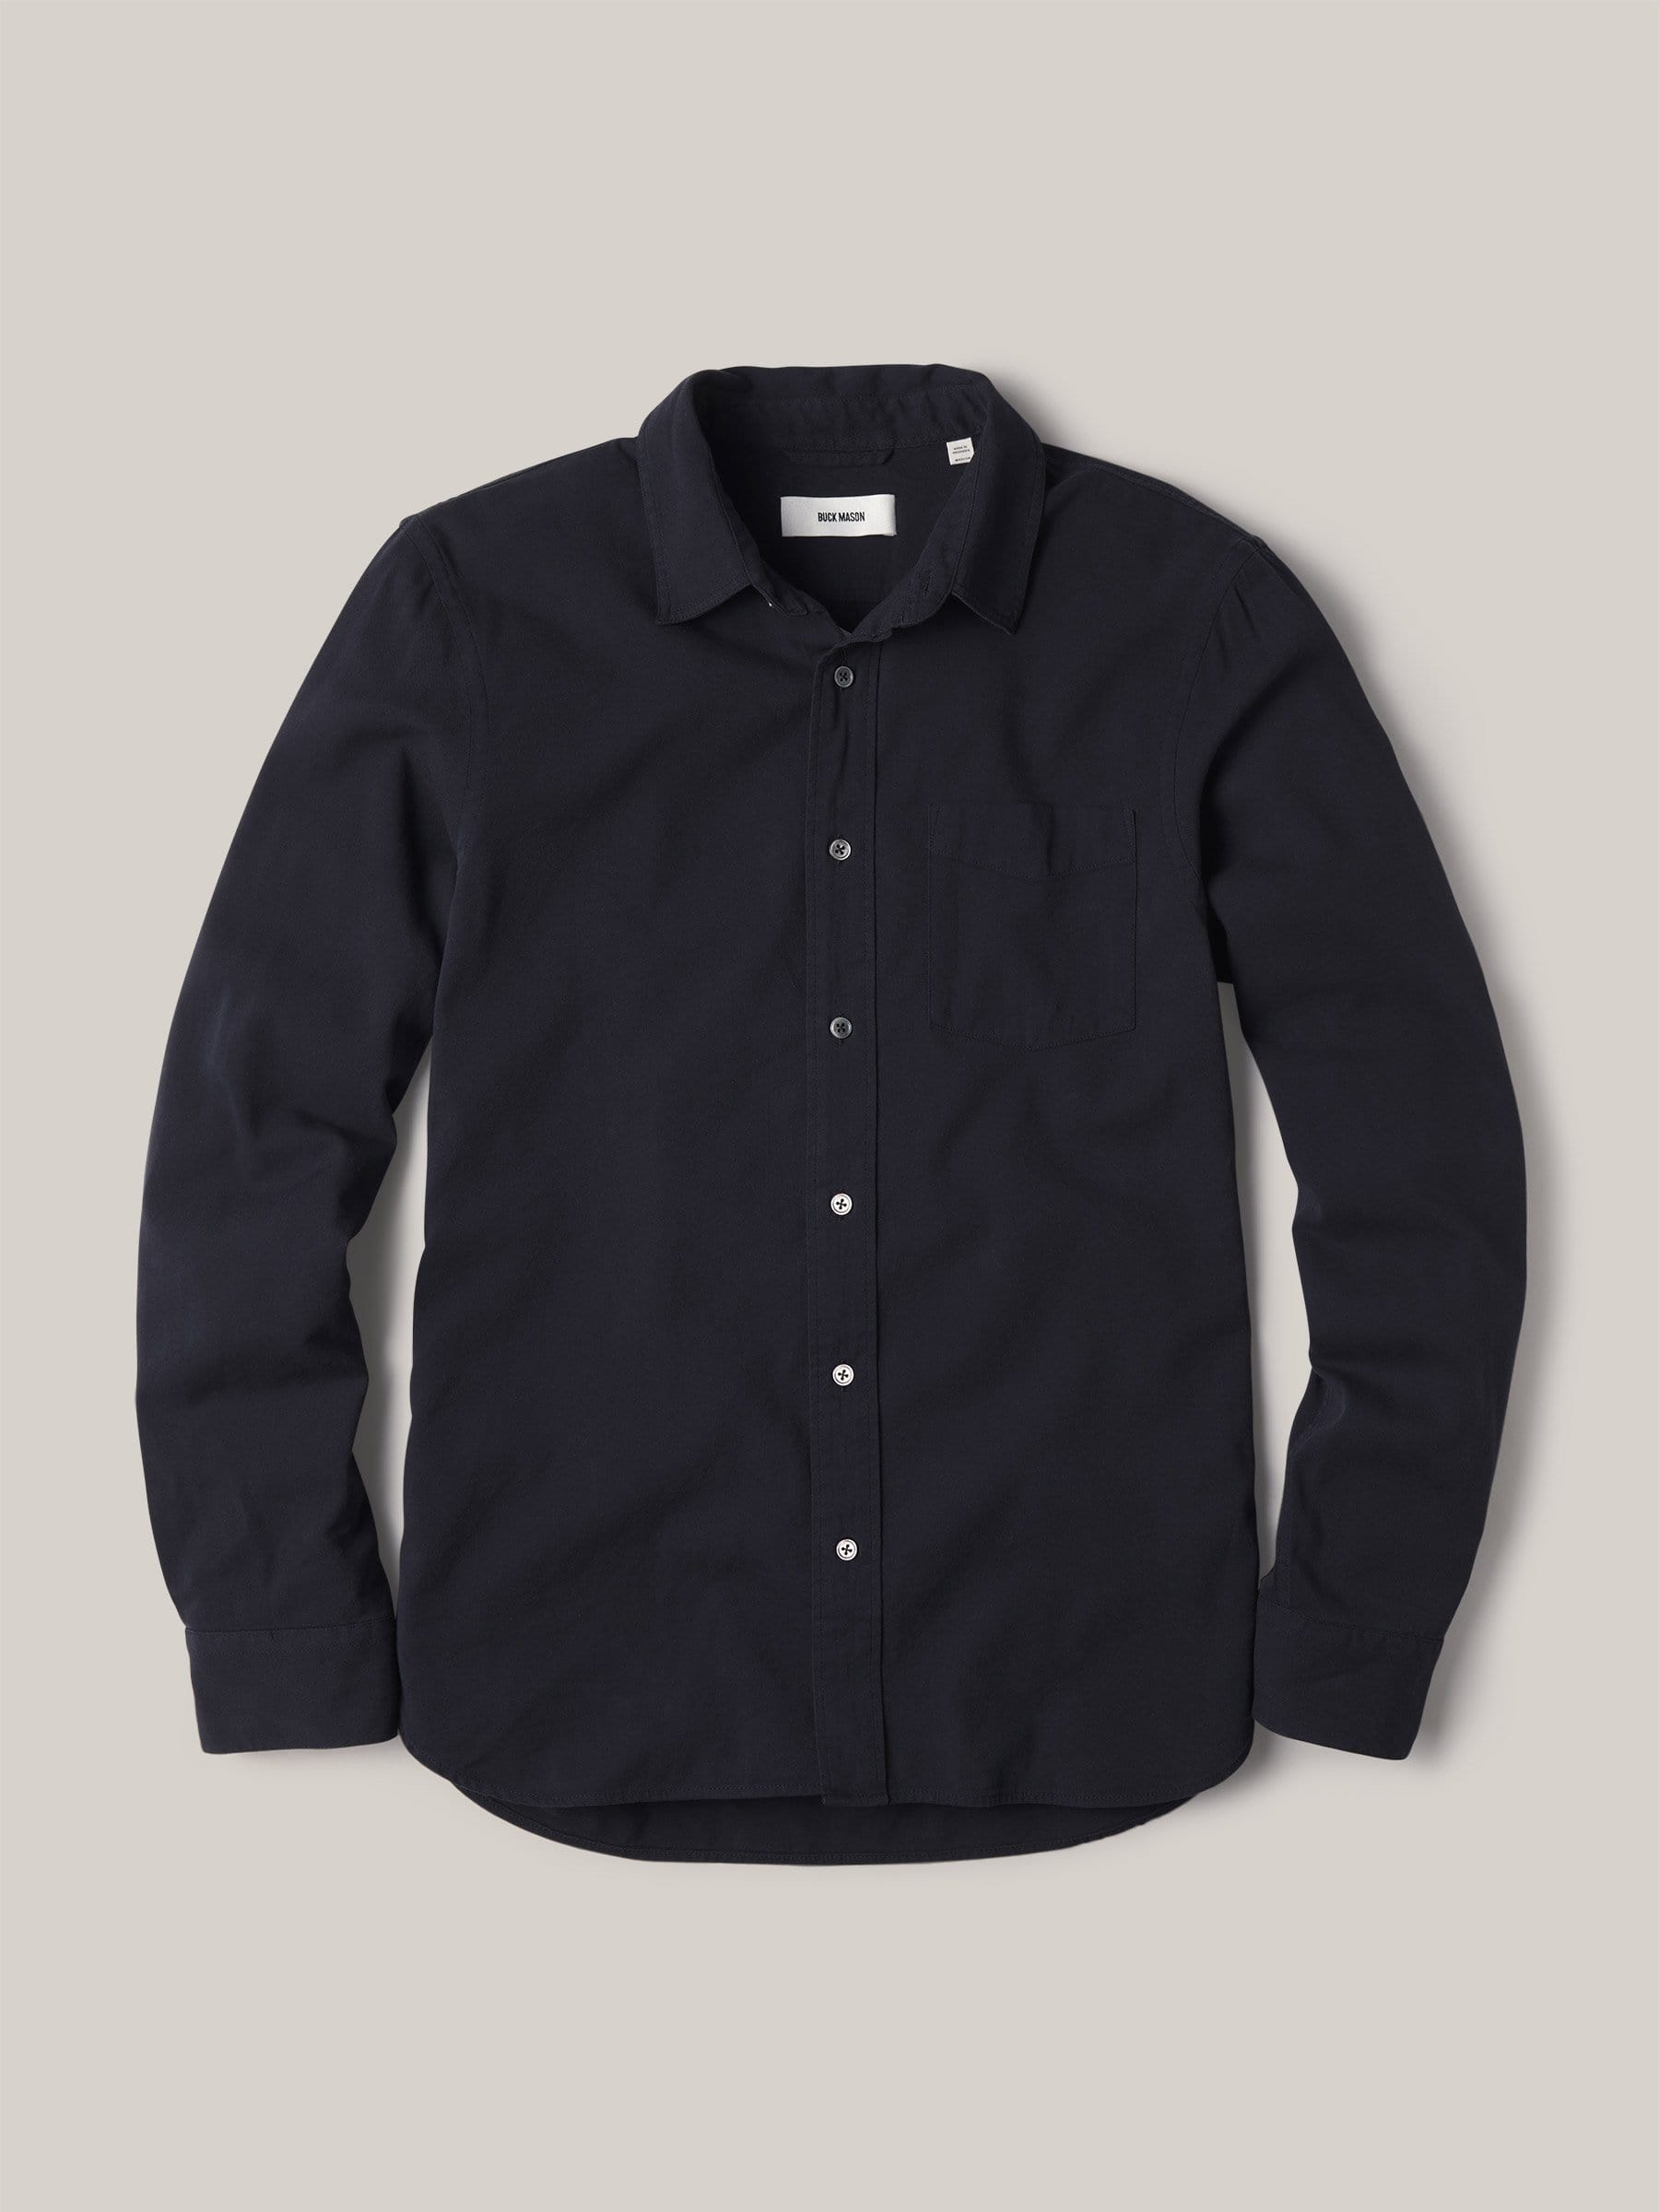 Buck Mason - Black Draped Twill One Pocket Shirt